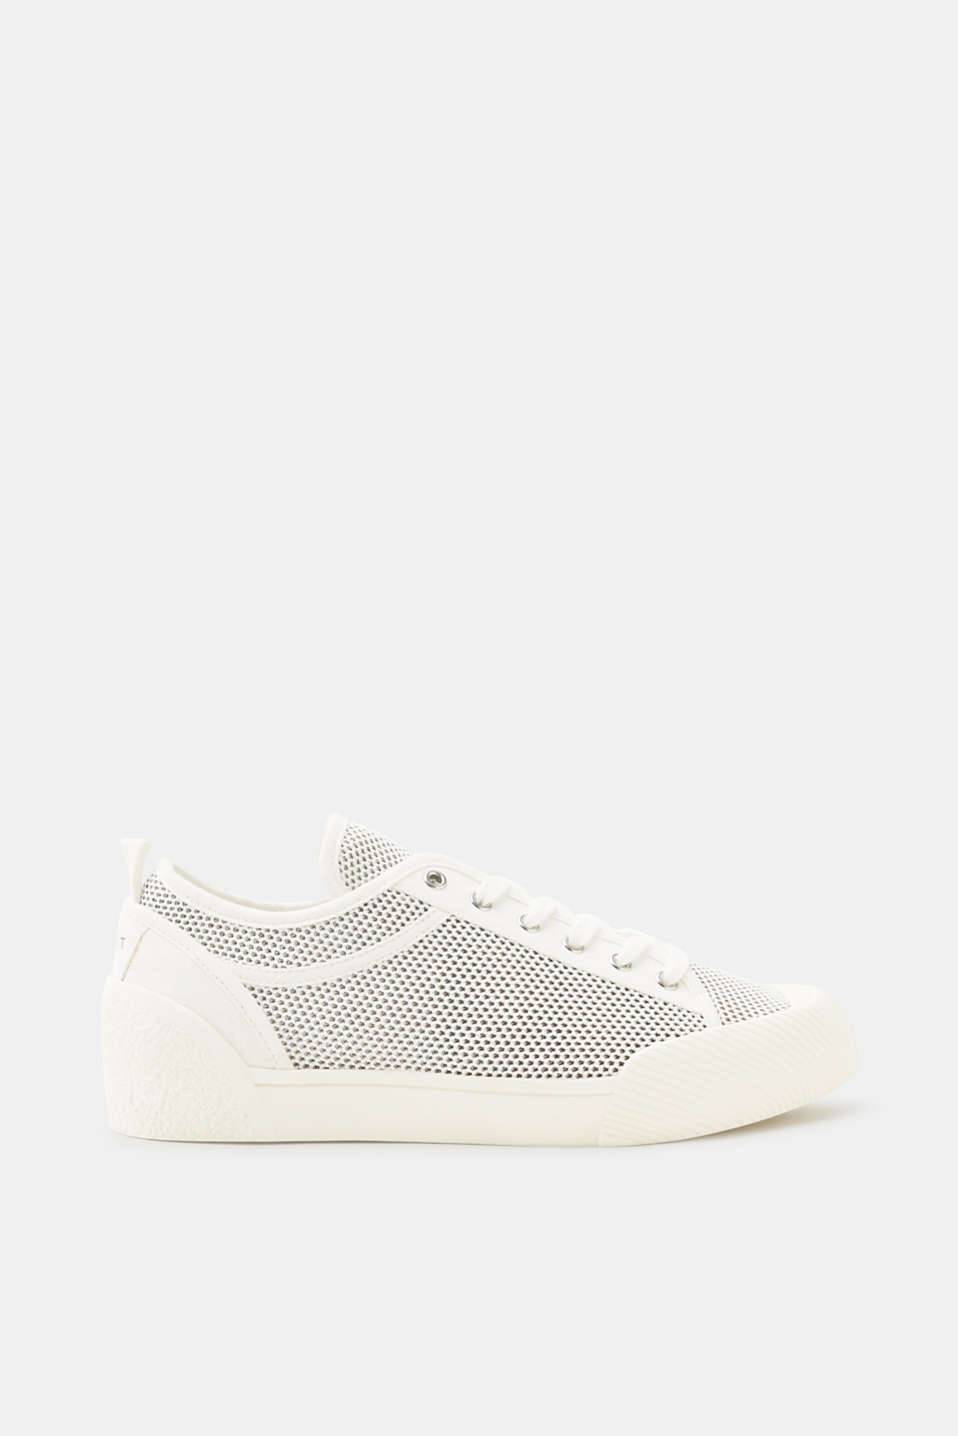 The sporty, high-tech mesh turns these trainers into trendy trainers.